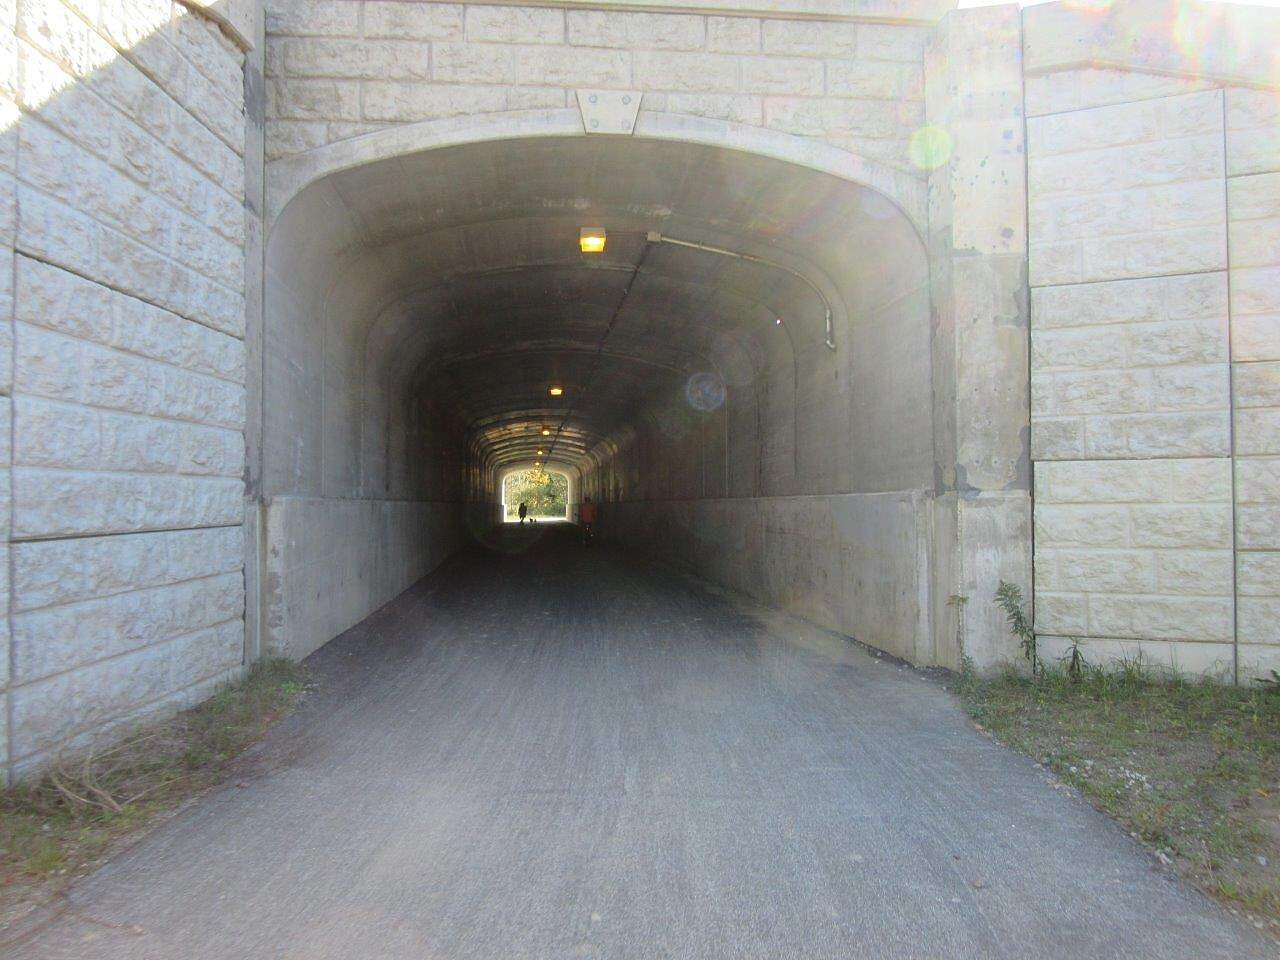 Western Reserve Greenway I-90 underpass Where the trail goes under Interstate 90, Austinburg